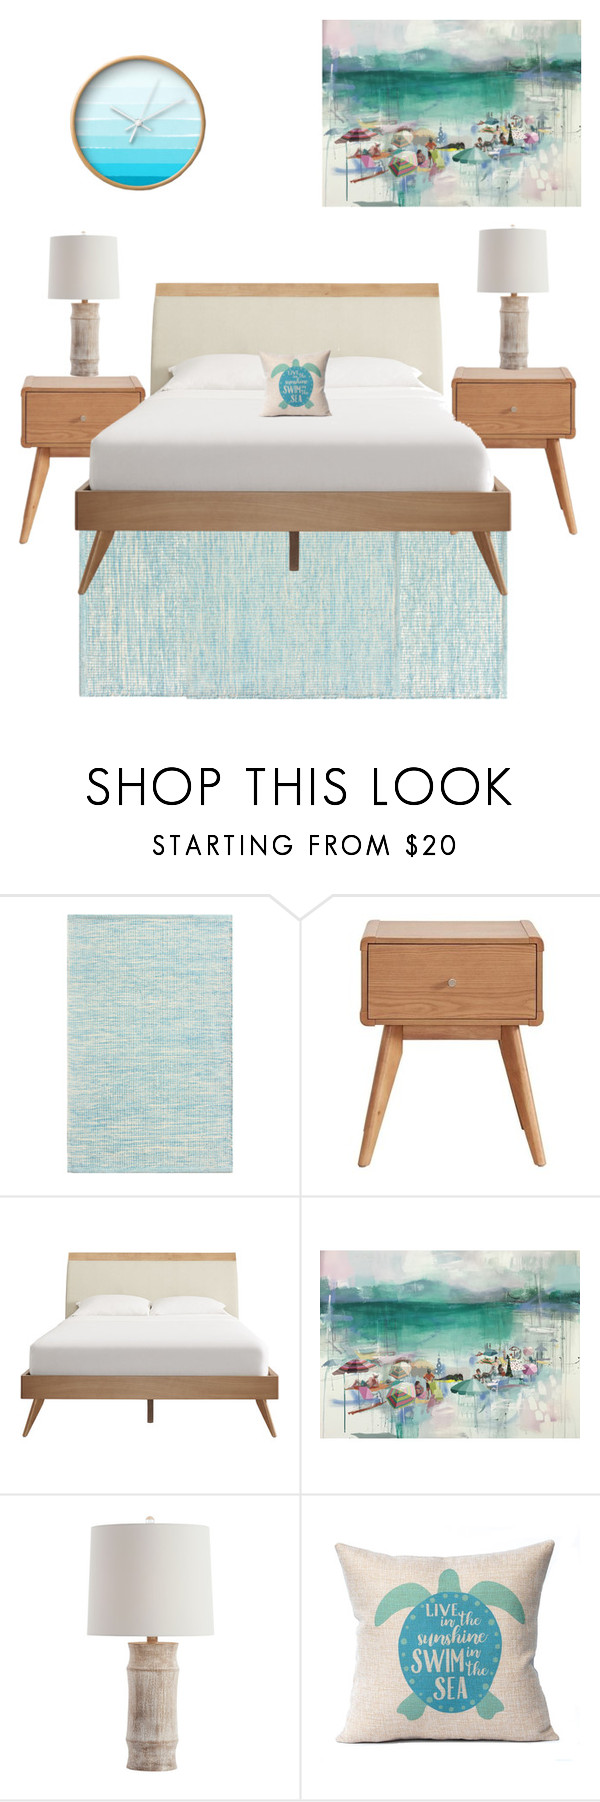 """""""In My Home: Beach House"""" by katsin90 ❤ liked on Polyvore featuring interior, interiors, interior design, home, home decor, interior decorating and Arteriors"""